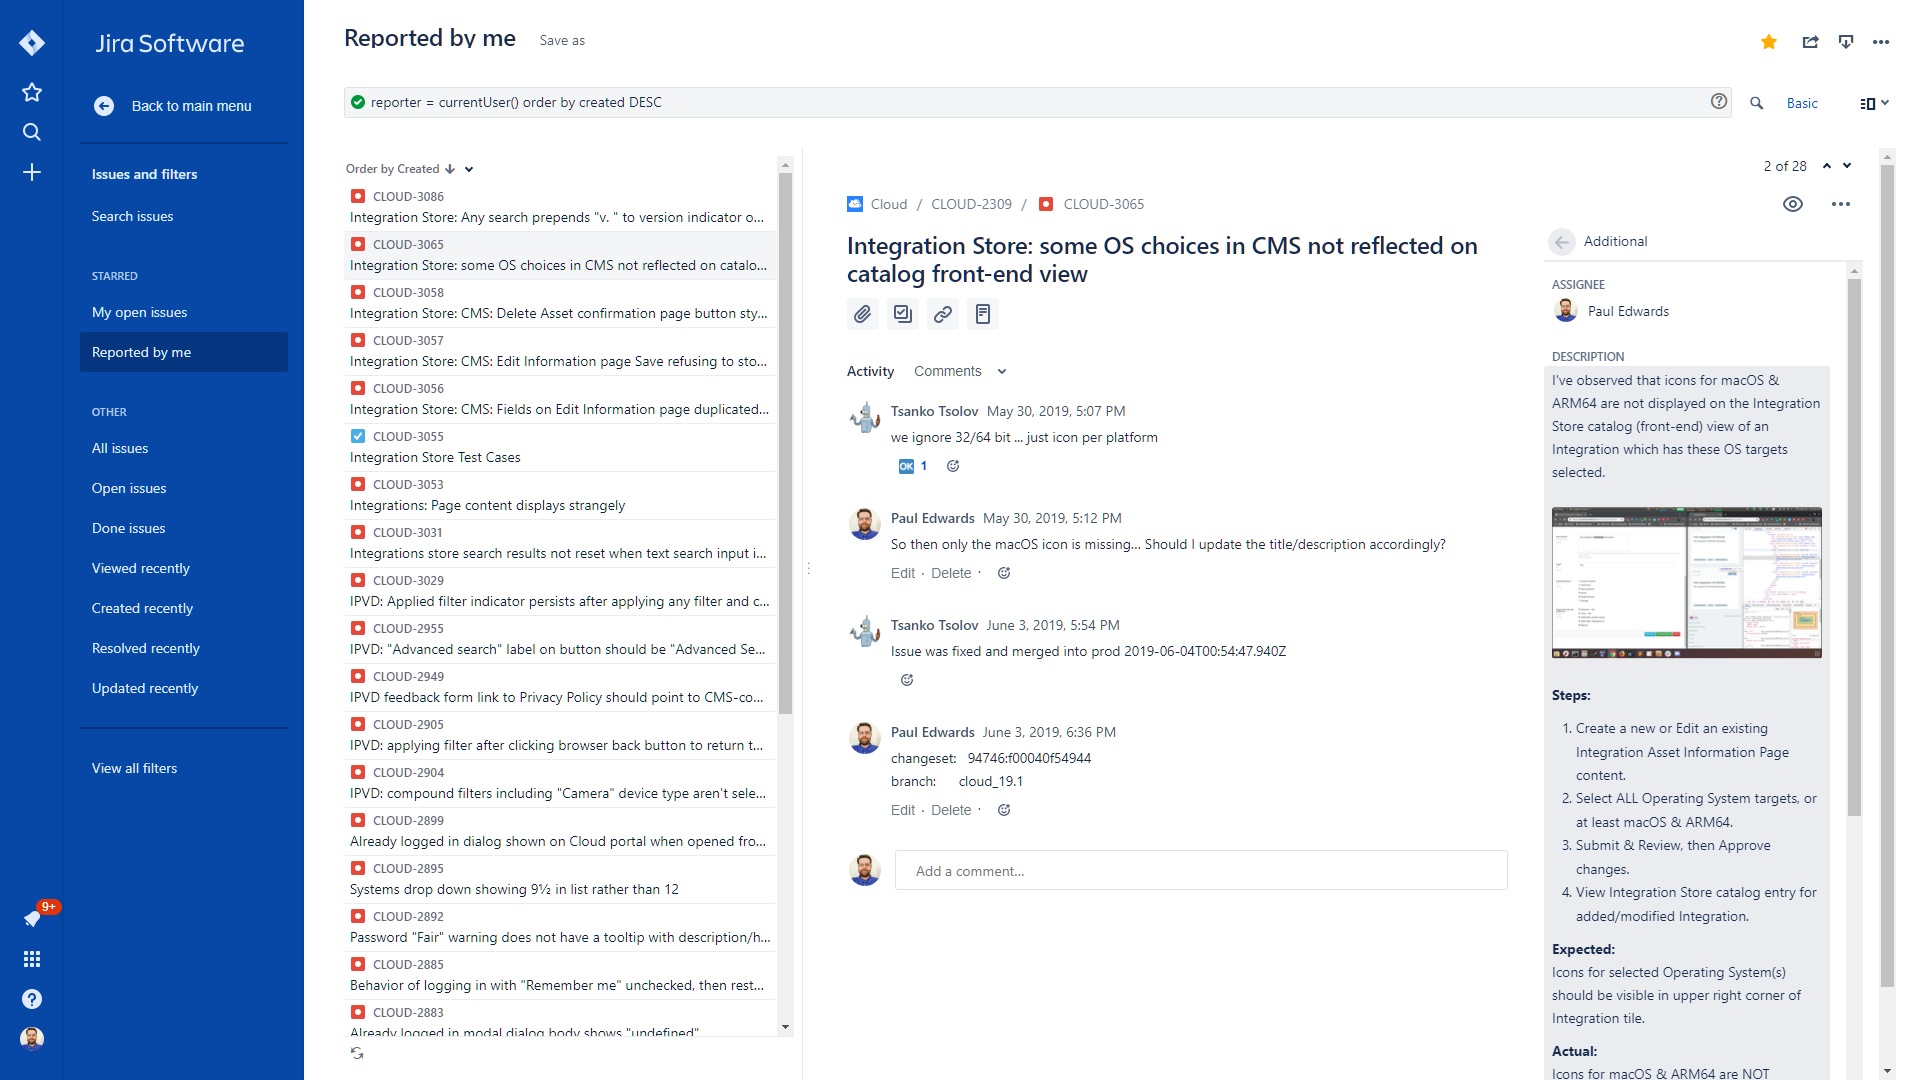 How to turn off or revert back to old JIRA interfa